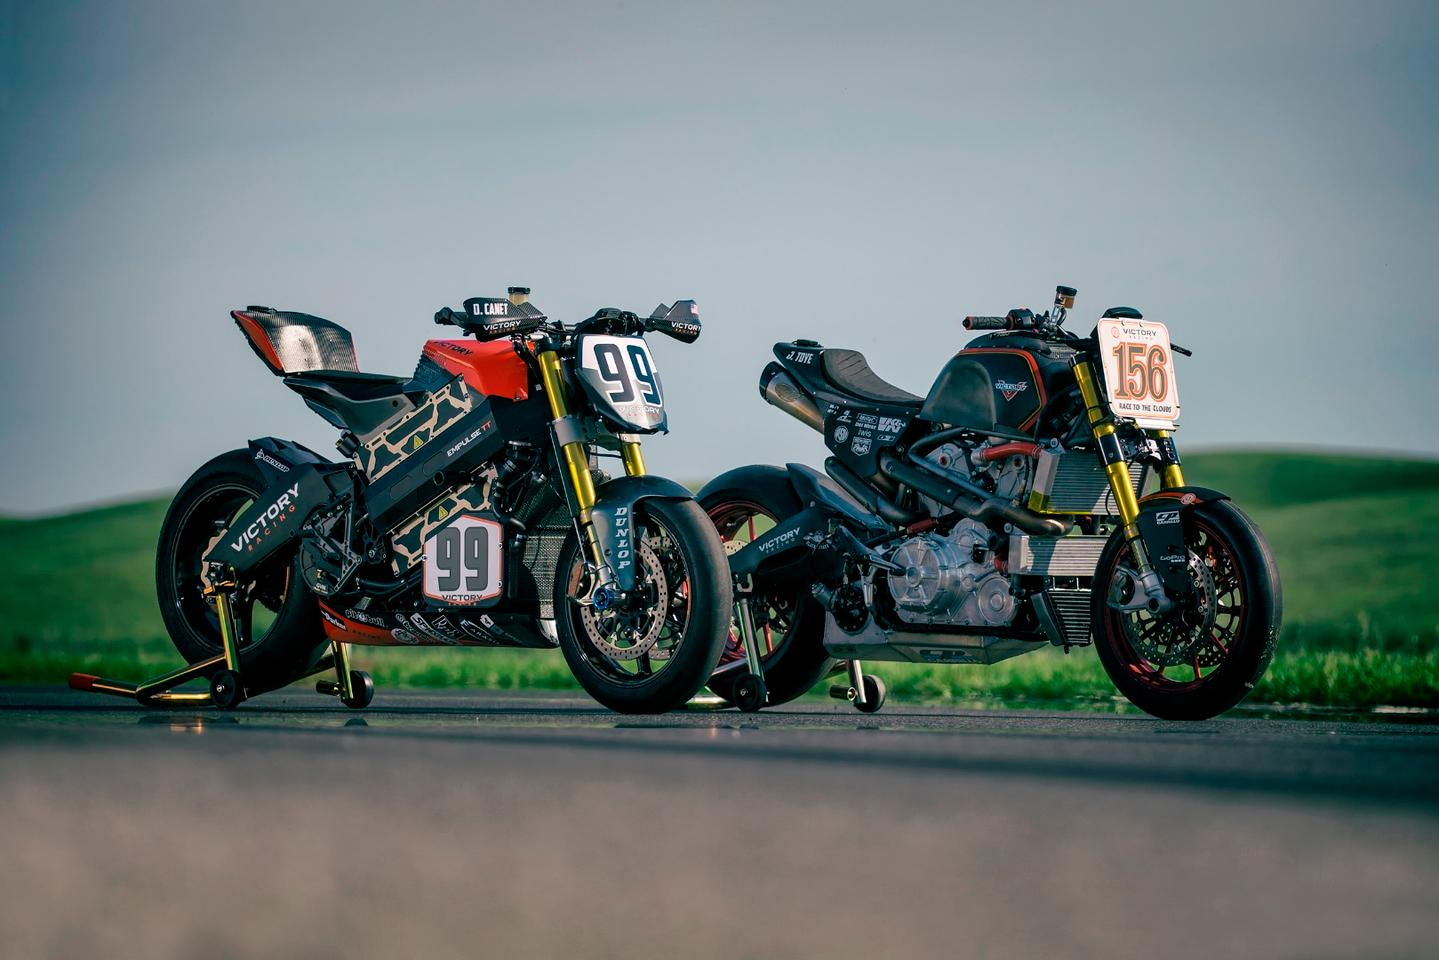 The Empulse RR(#99)and the Project 156 (#156)powered Victory Motorcycles'double assault at the 2016 Pikes Peak International Hill Climb